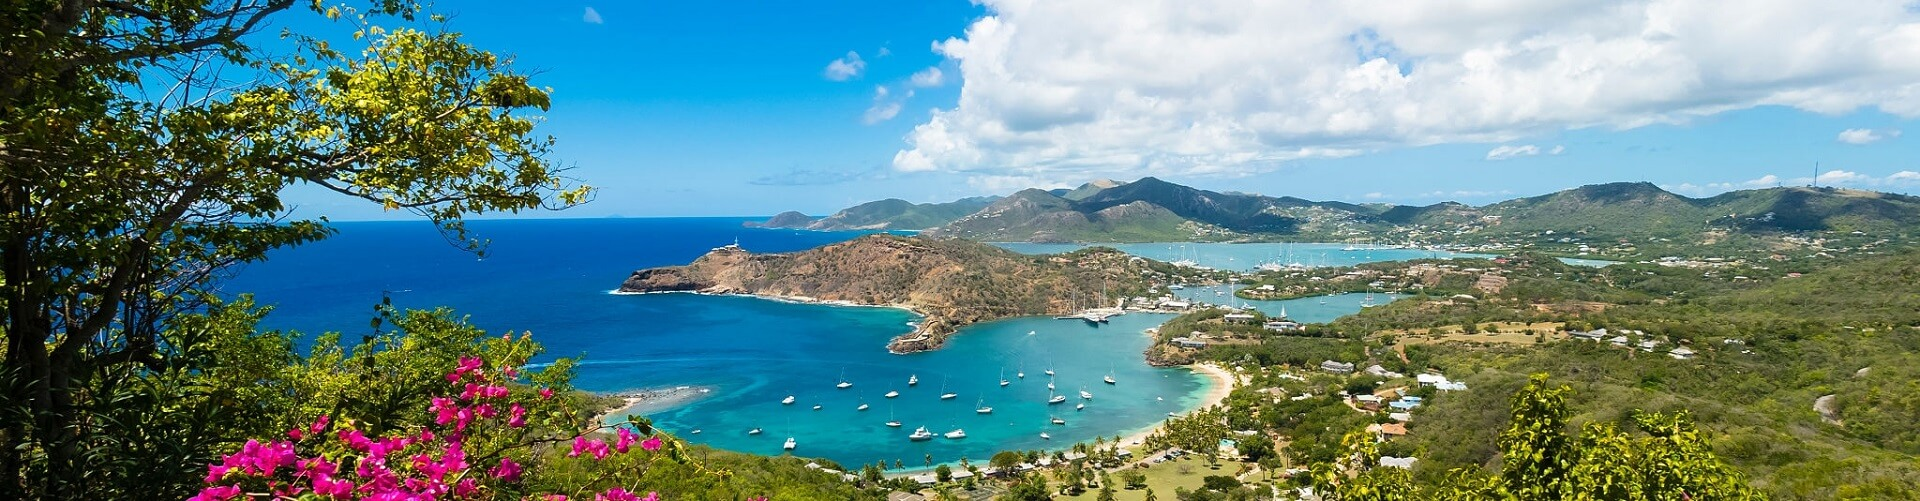 antigua-citizenship-by-investment-program